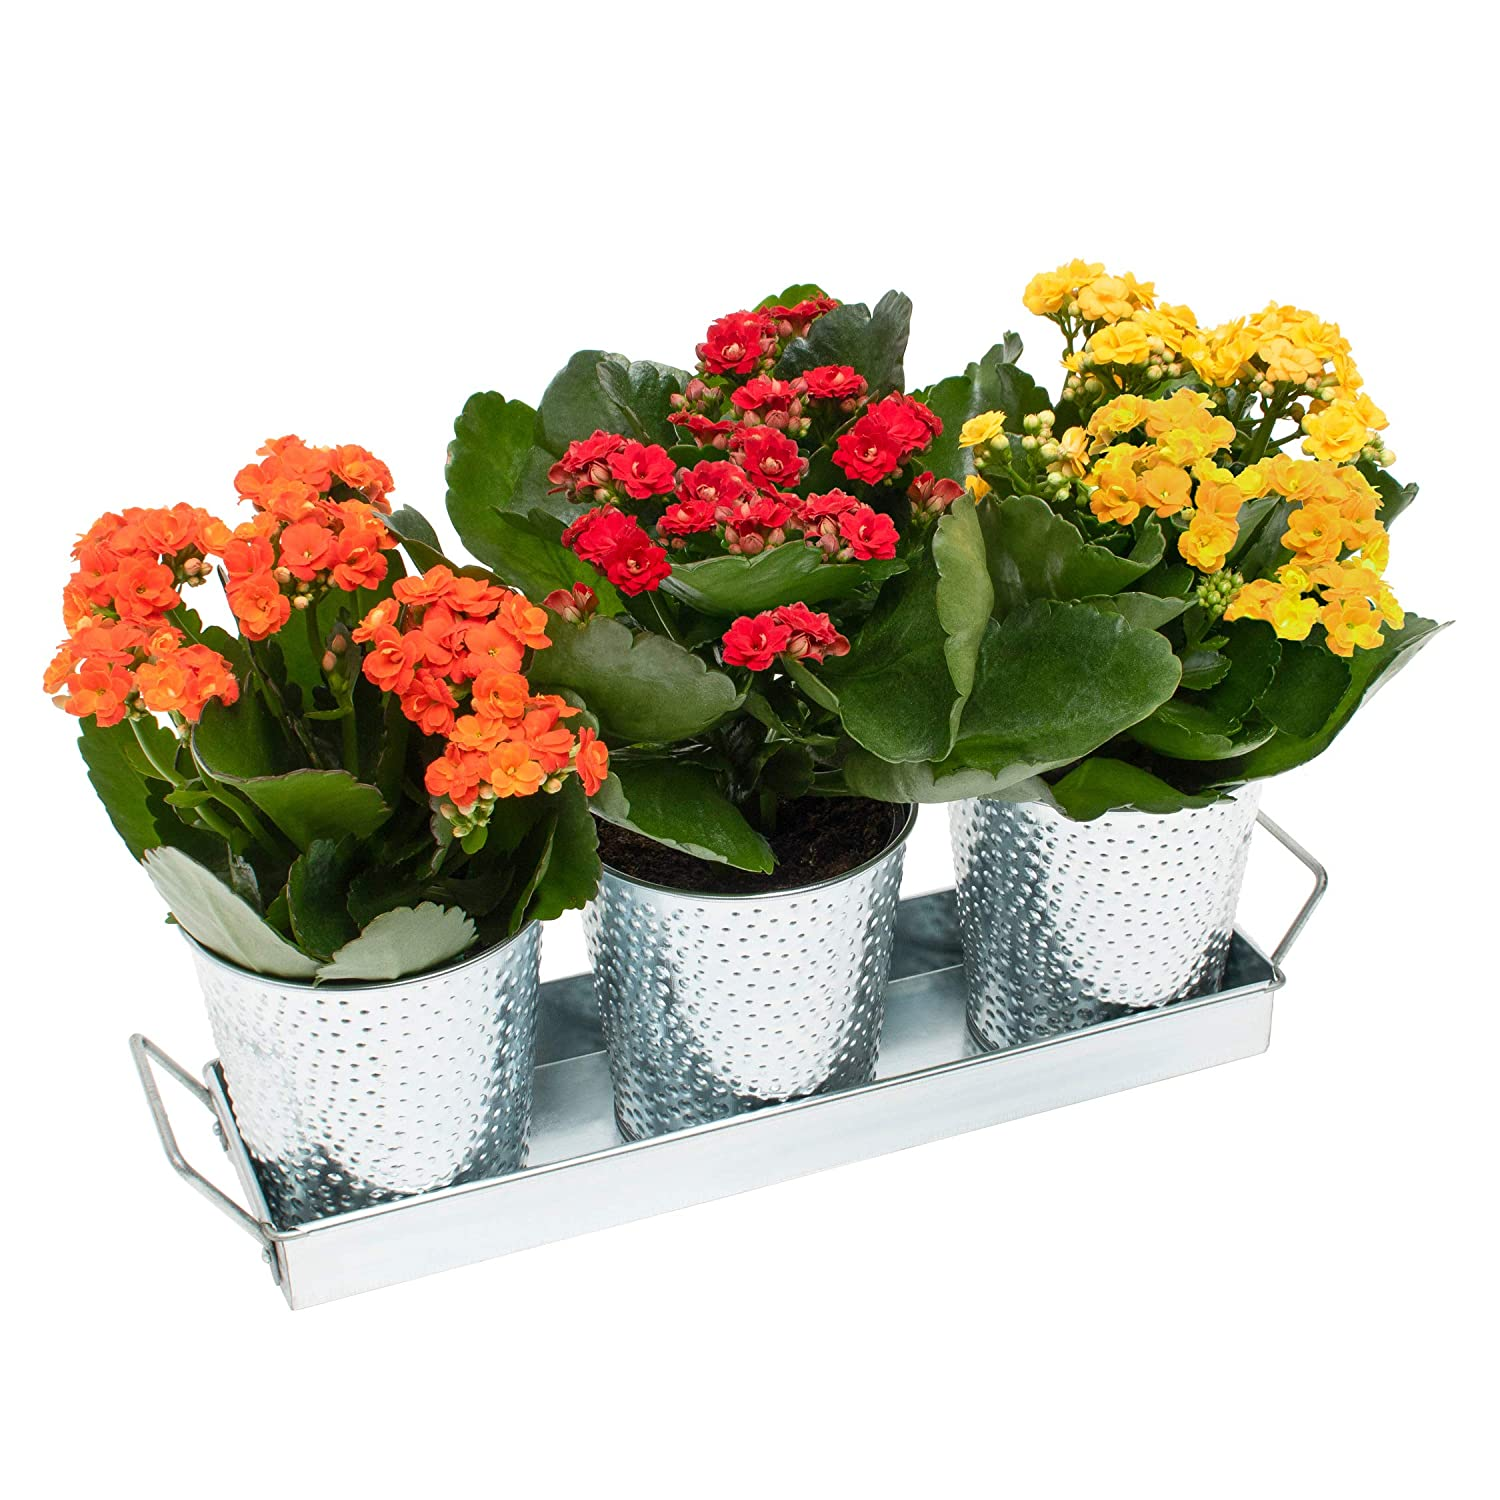 Saratoga Home Galvanized Planter Pots – Set of 3 Indoor Planters with Drainage and Tray – Perfect for All Small House Plants, Herbs, African Violets and Succulents